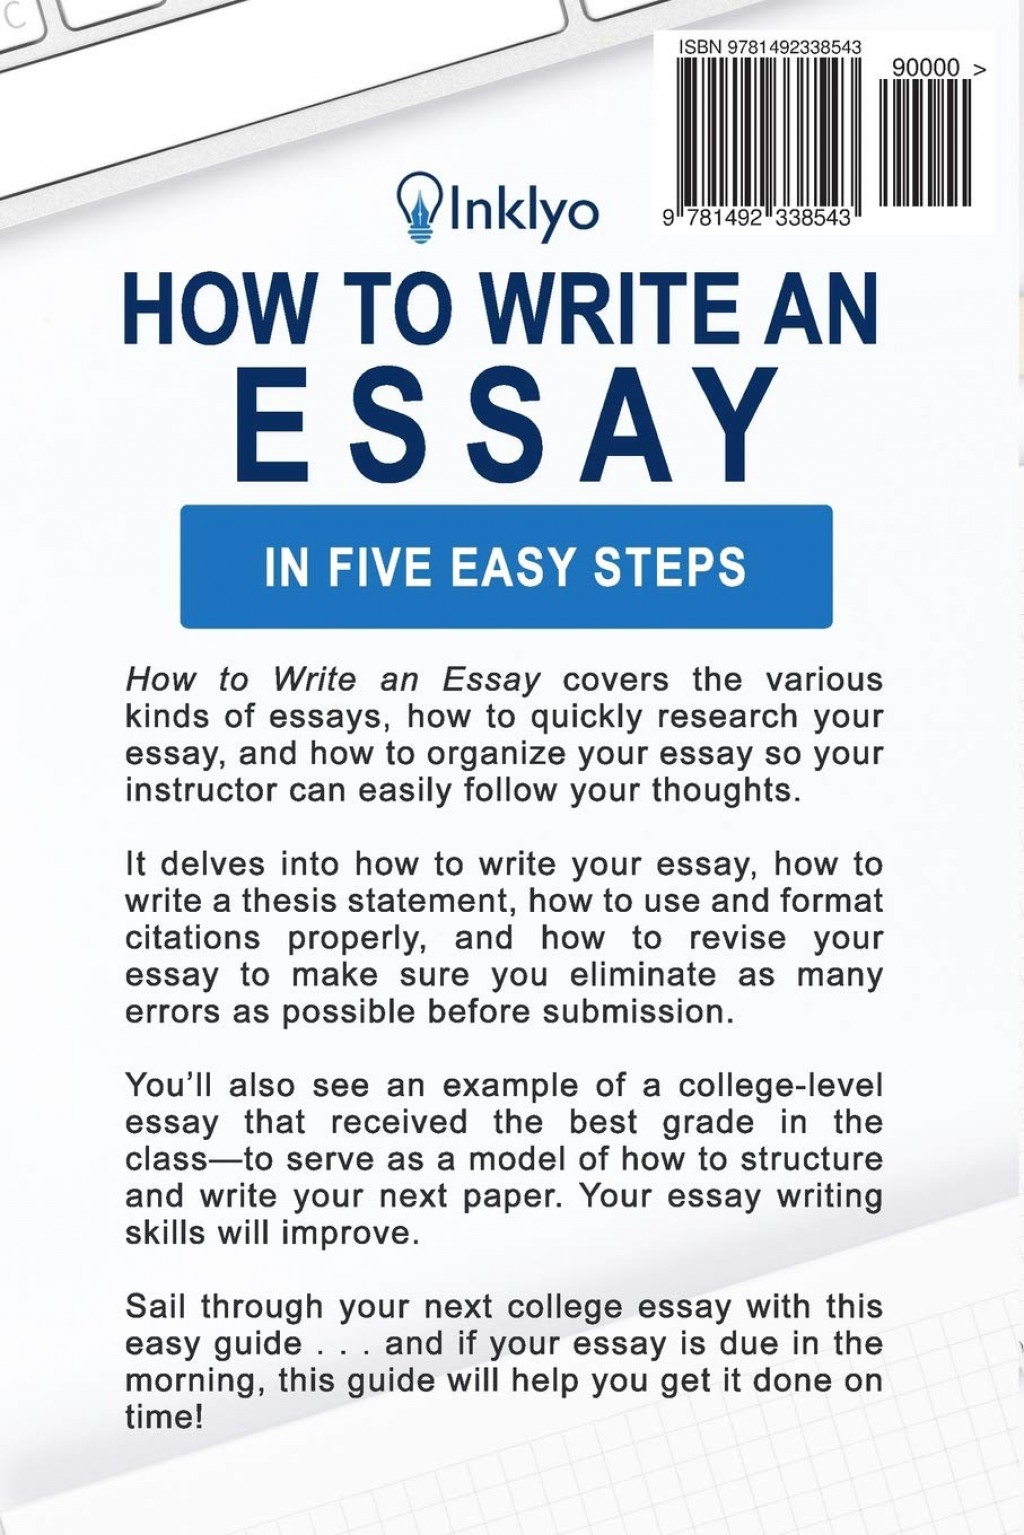 007 How To Do An Essay Example Surprising Write Academic Fast Conclusion On A Book I Cite In Apa Format Large